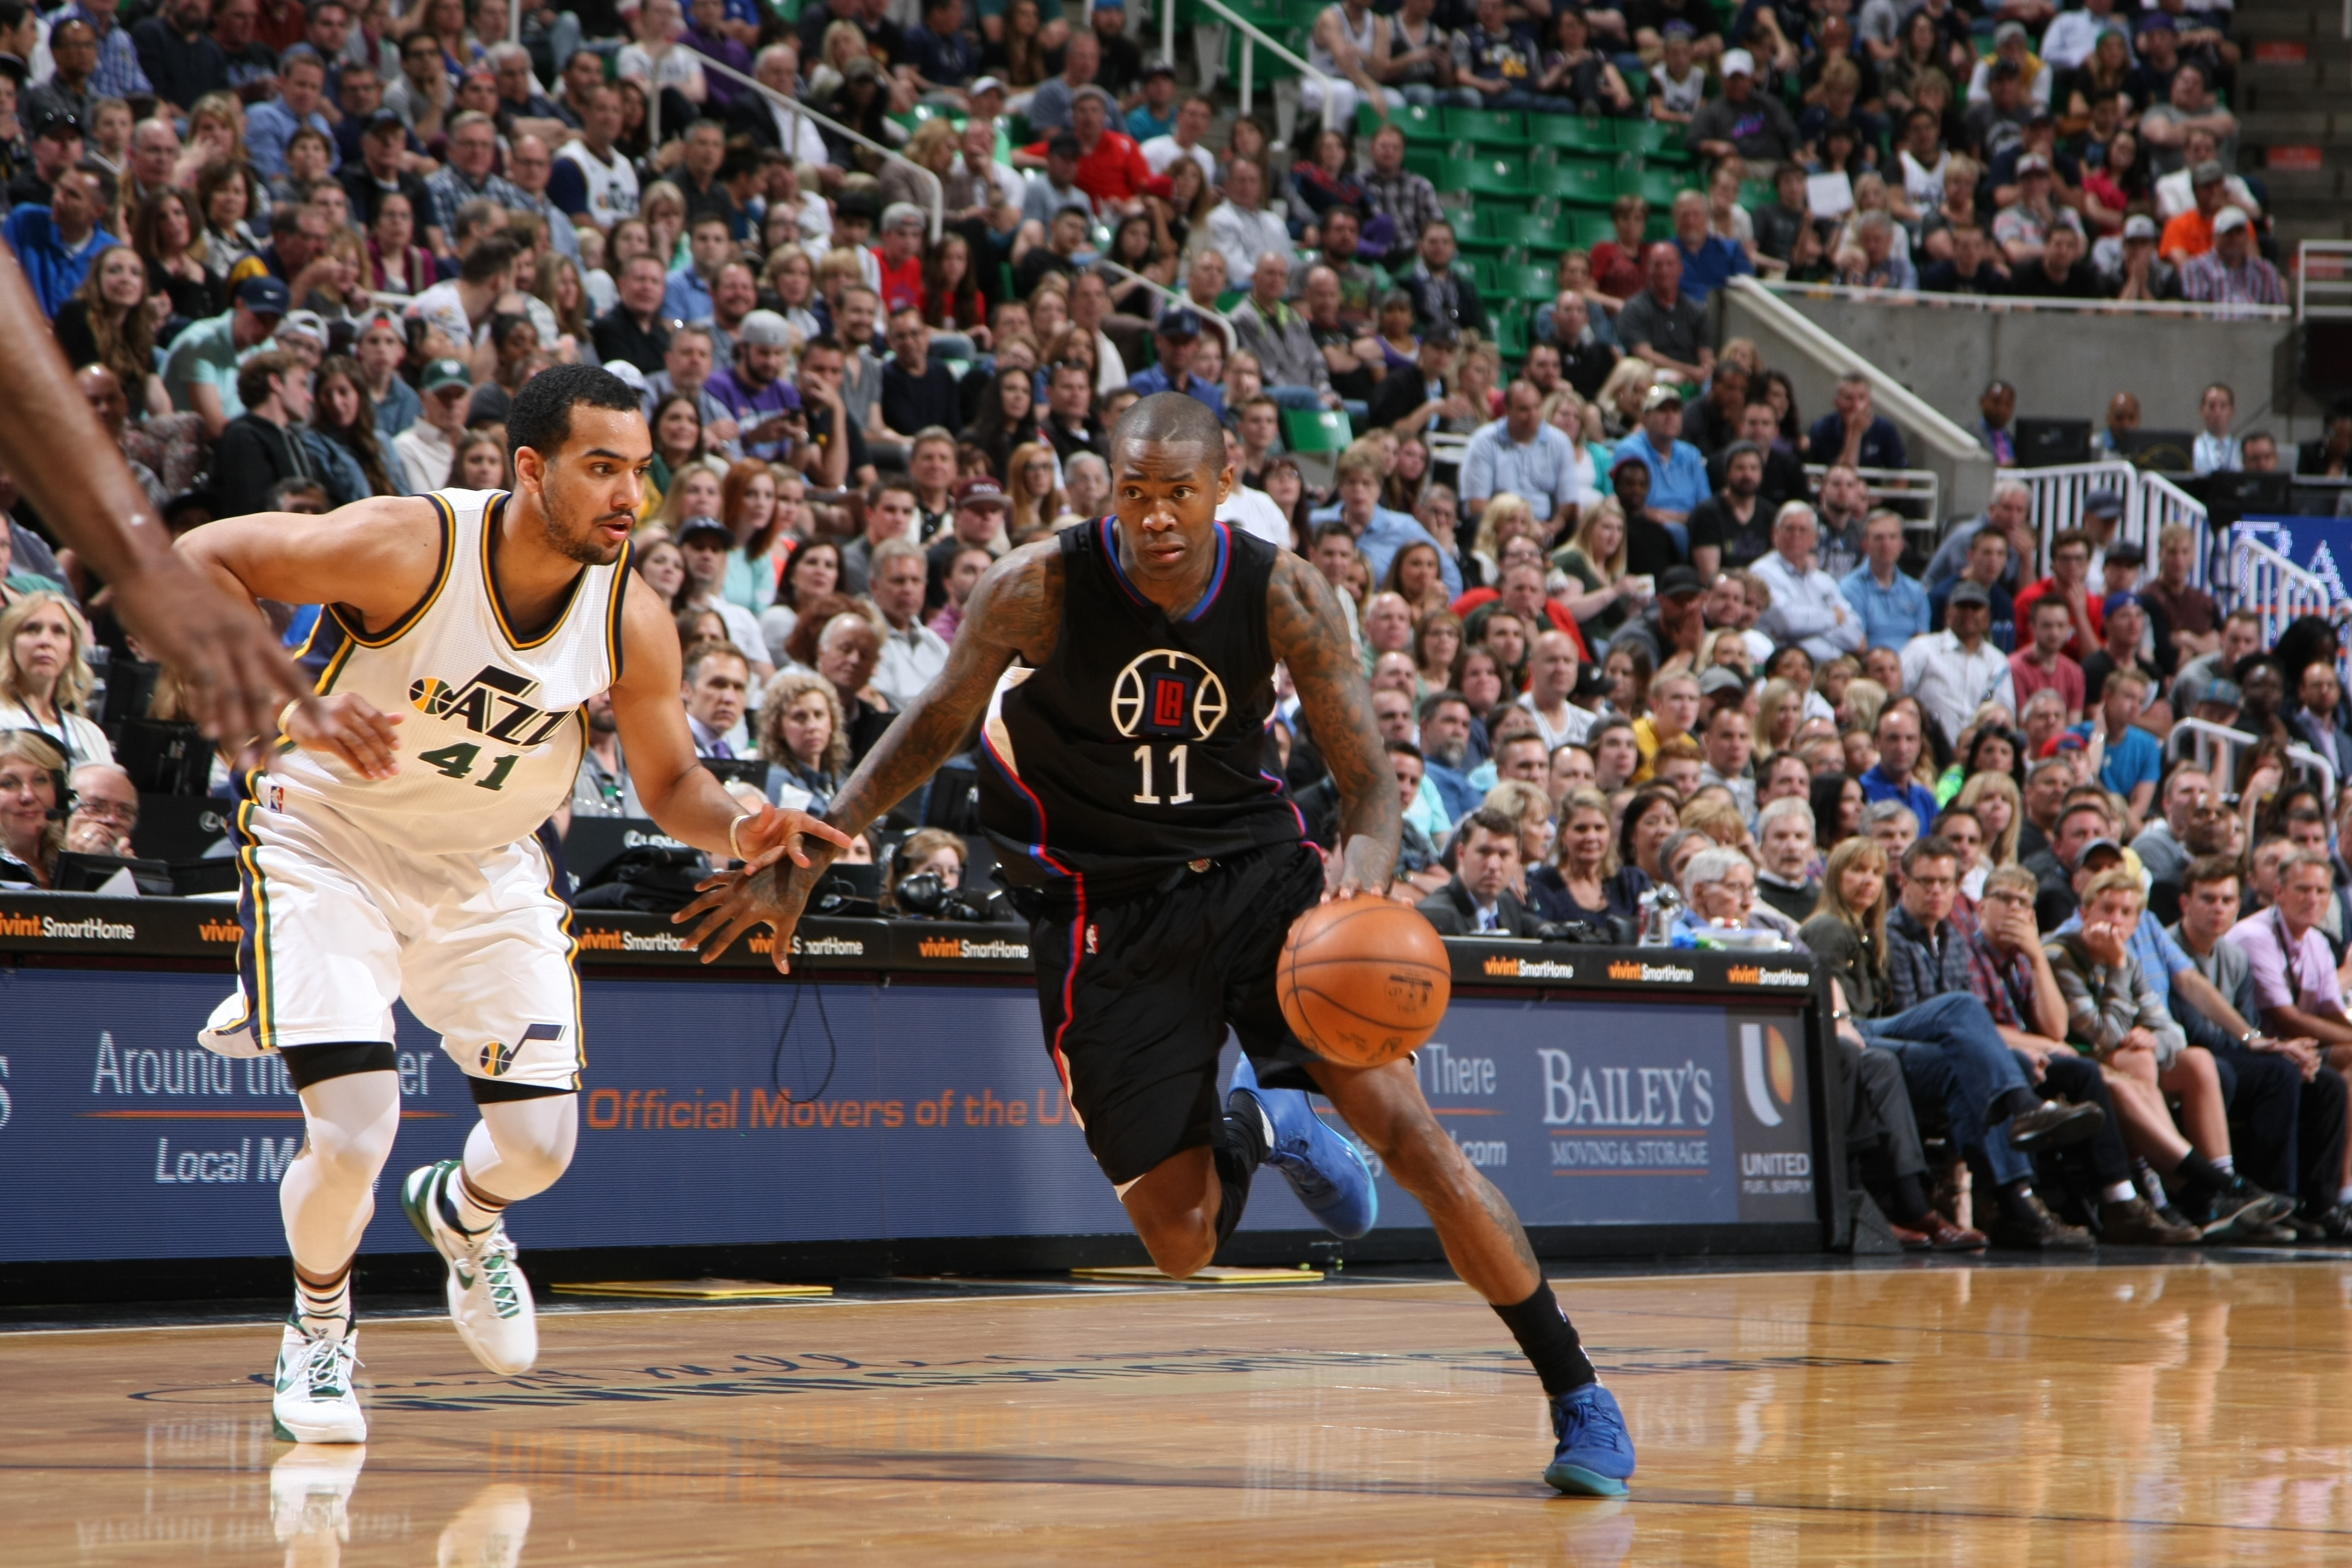 SALT LAKE CITY, UT  - APRIL 8: Jamal Crawford #11 of the Los Angeles Clippers drives to the basket against the Utah Jazz during the game on April 8, 2016 at Vivint Smart Home Arena in Salt Lake City, Utah. (Photo by Melissa Majchrzak/NBAE via Getty Images